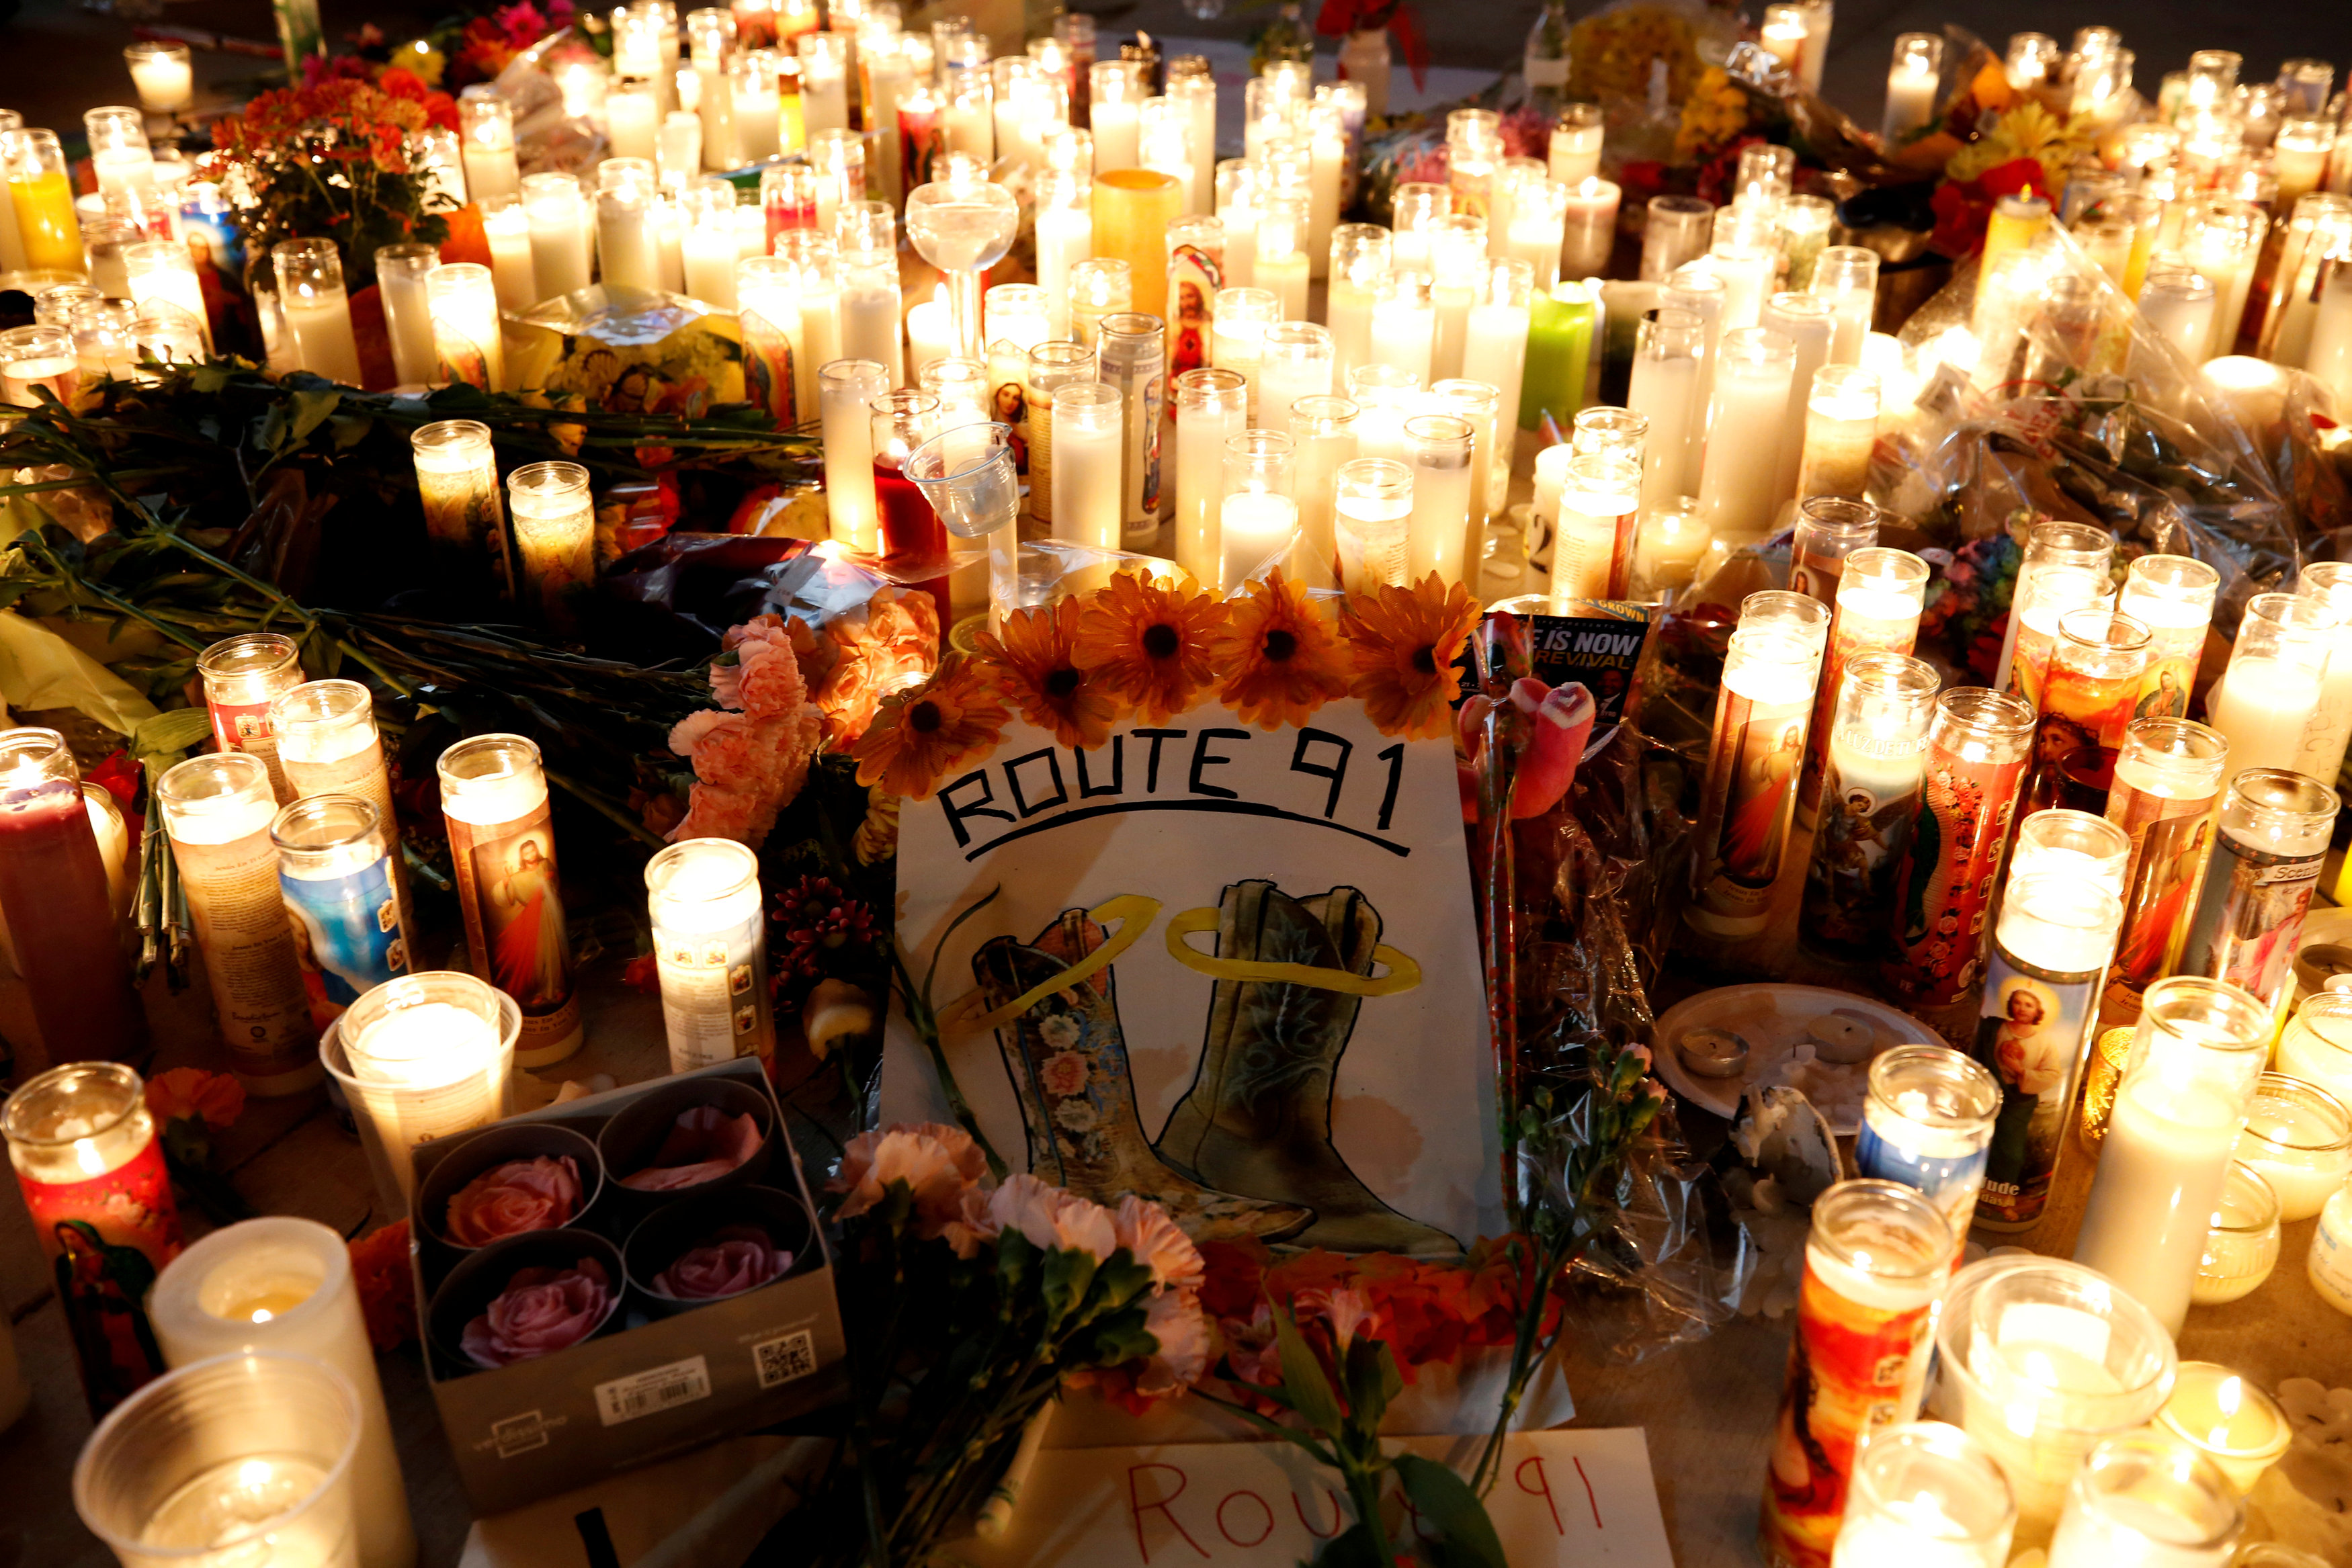 FILE PHOTO: A candlelight vigil is pictured on the Las Vegas strip following a mass shooting at the Route 91 Harvest Country Music Festival in Las Vegas, Nevada, U.S., October 2, 2017. Picture taken October 2, 2017. REUTERS/Chris Wattie/File Photo